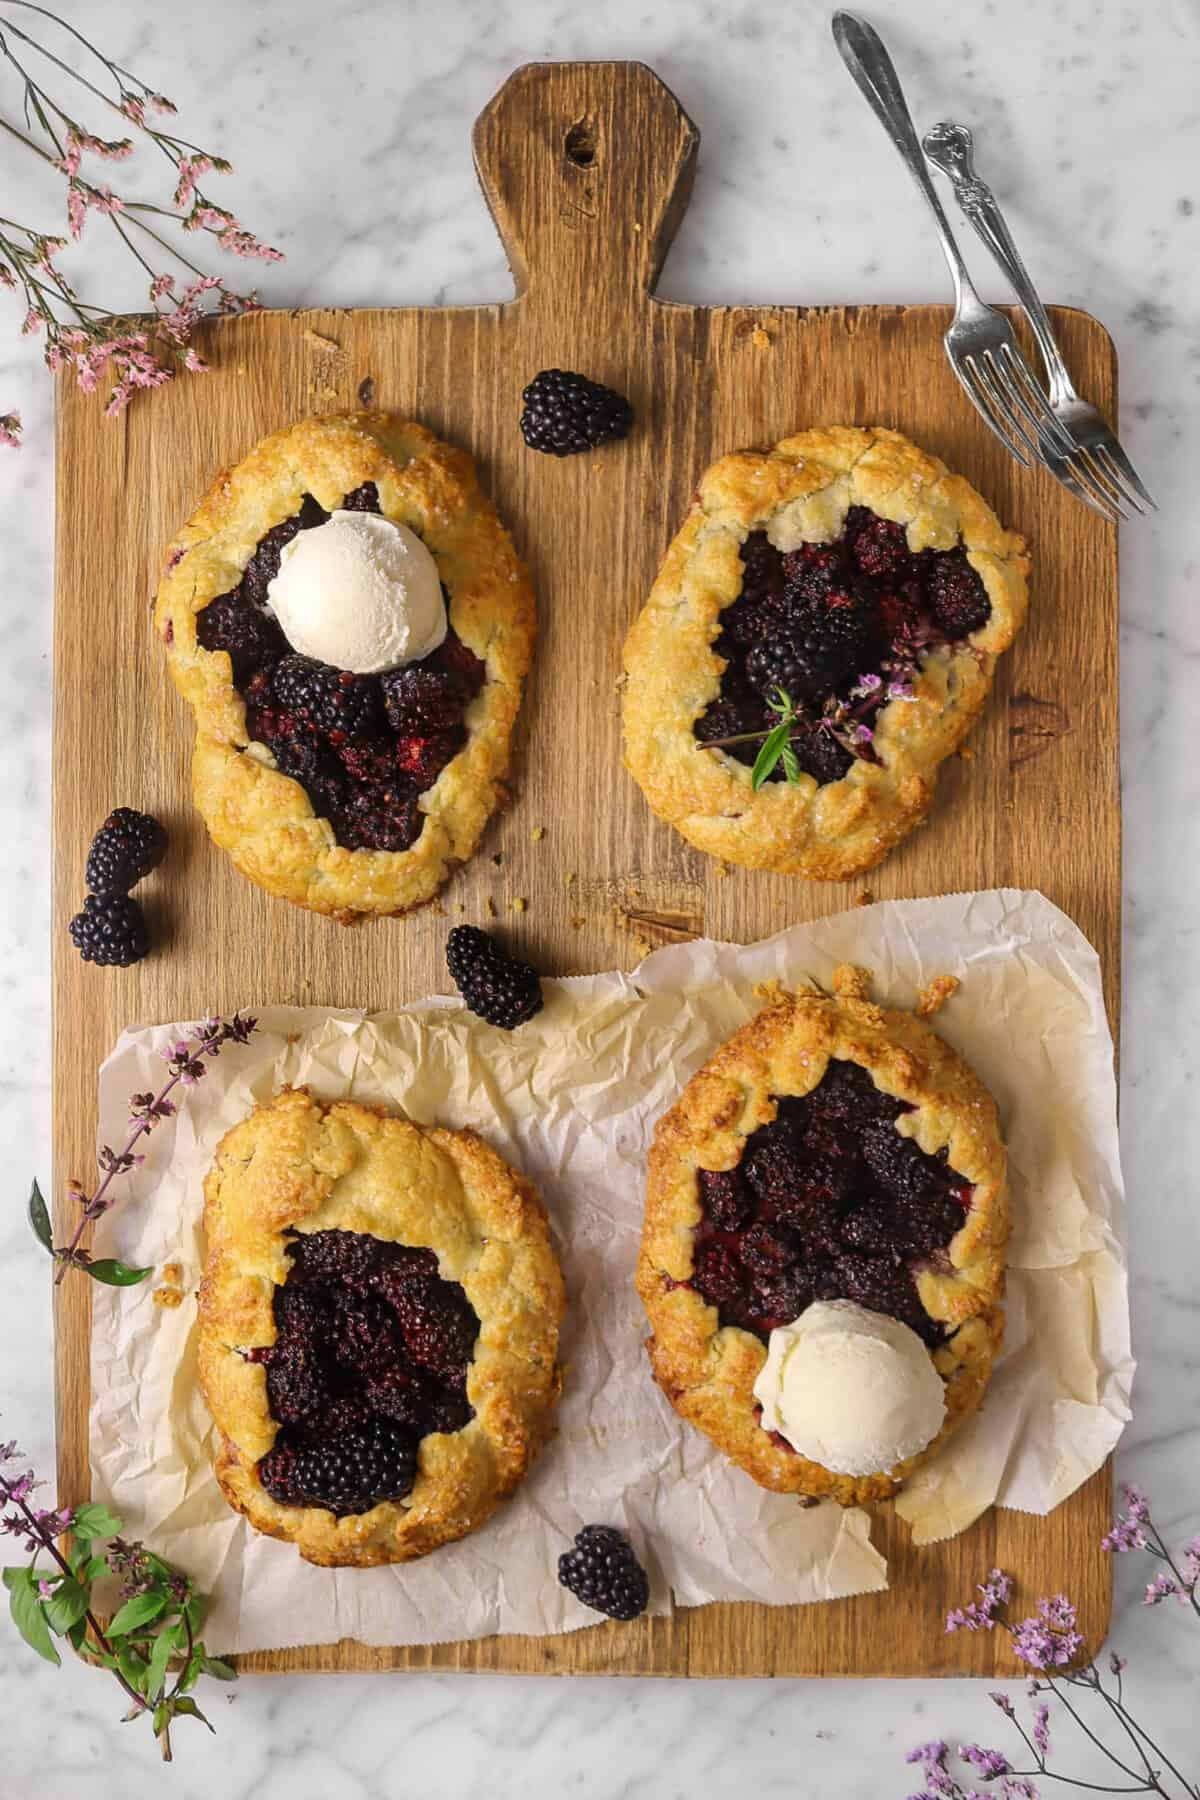 four galettes on a wood serving board with flowers, forks, and blackberries, two galettes have scoops of ice cream